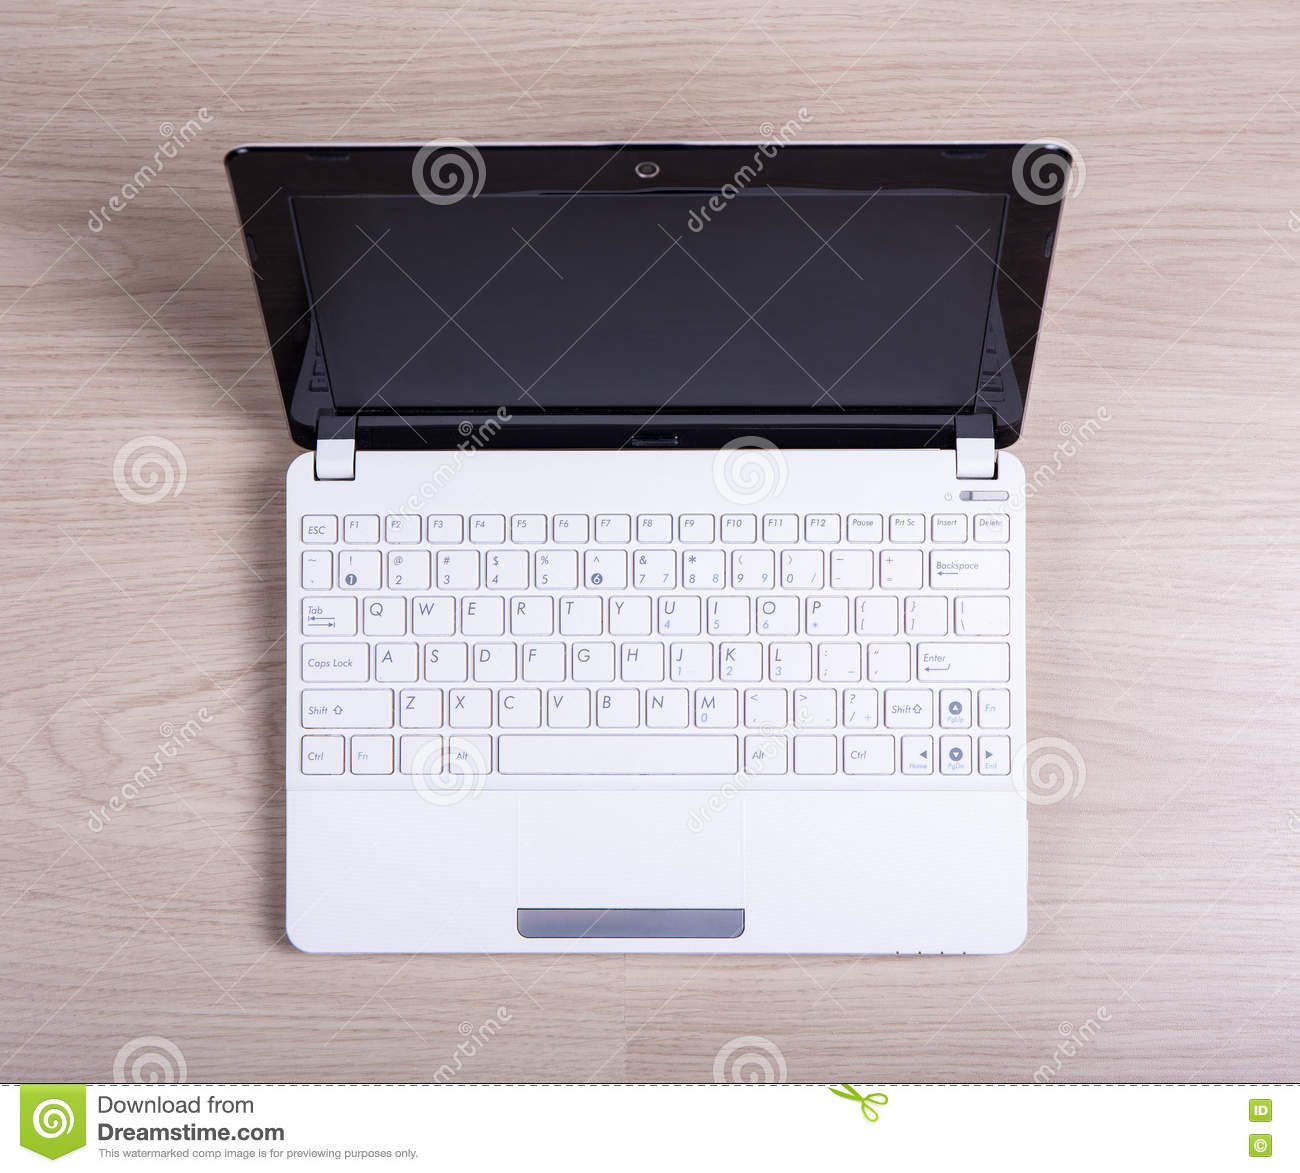 Top View Of White Laptop On The Table Stock Photo Image 72112642